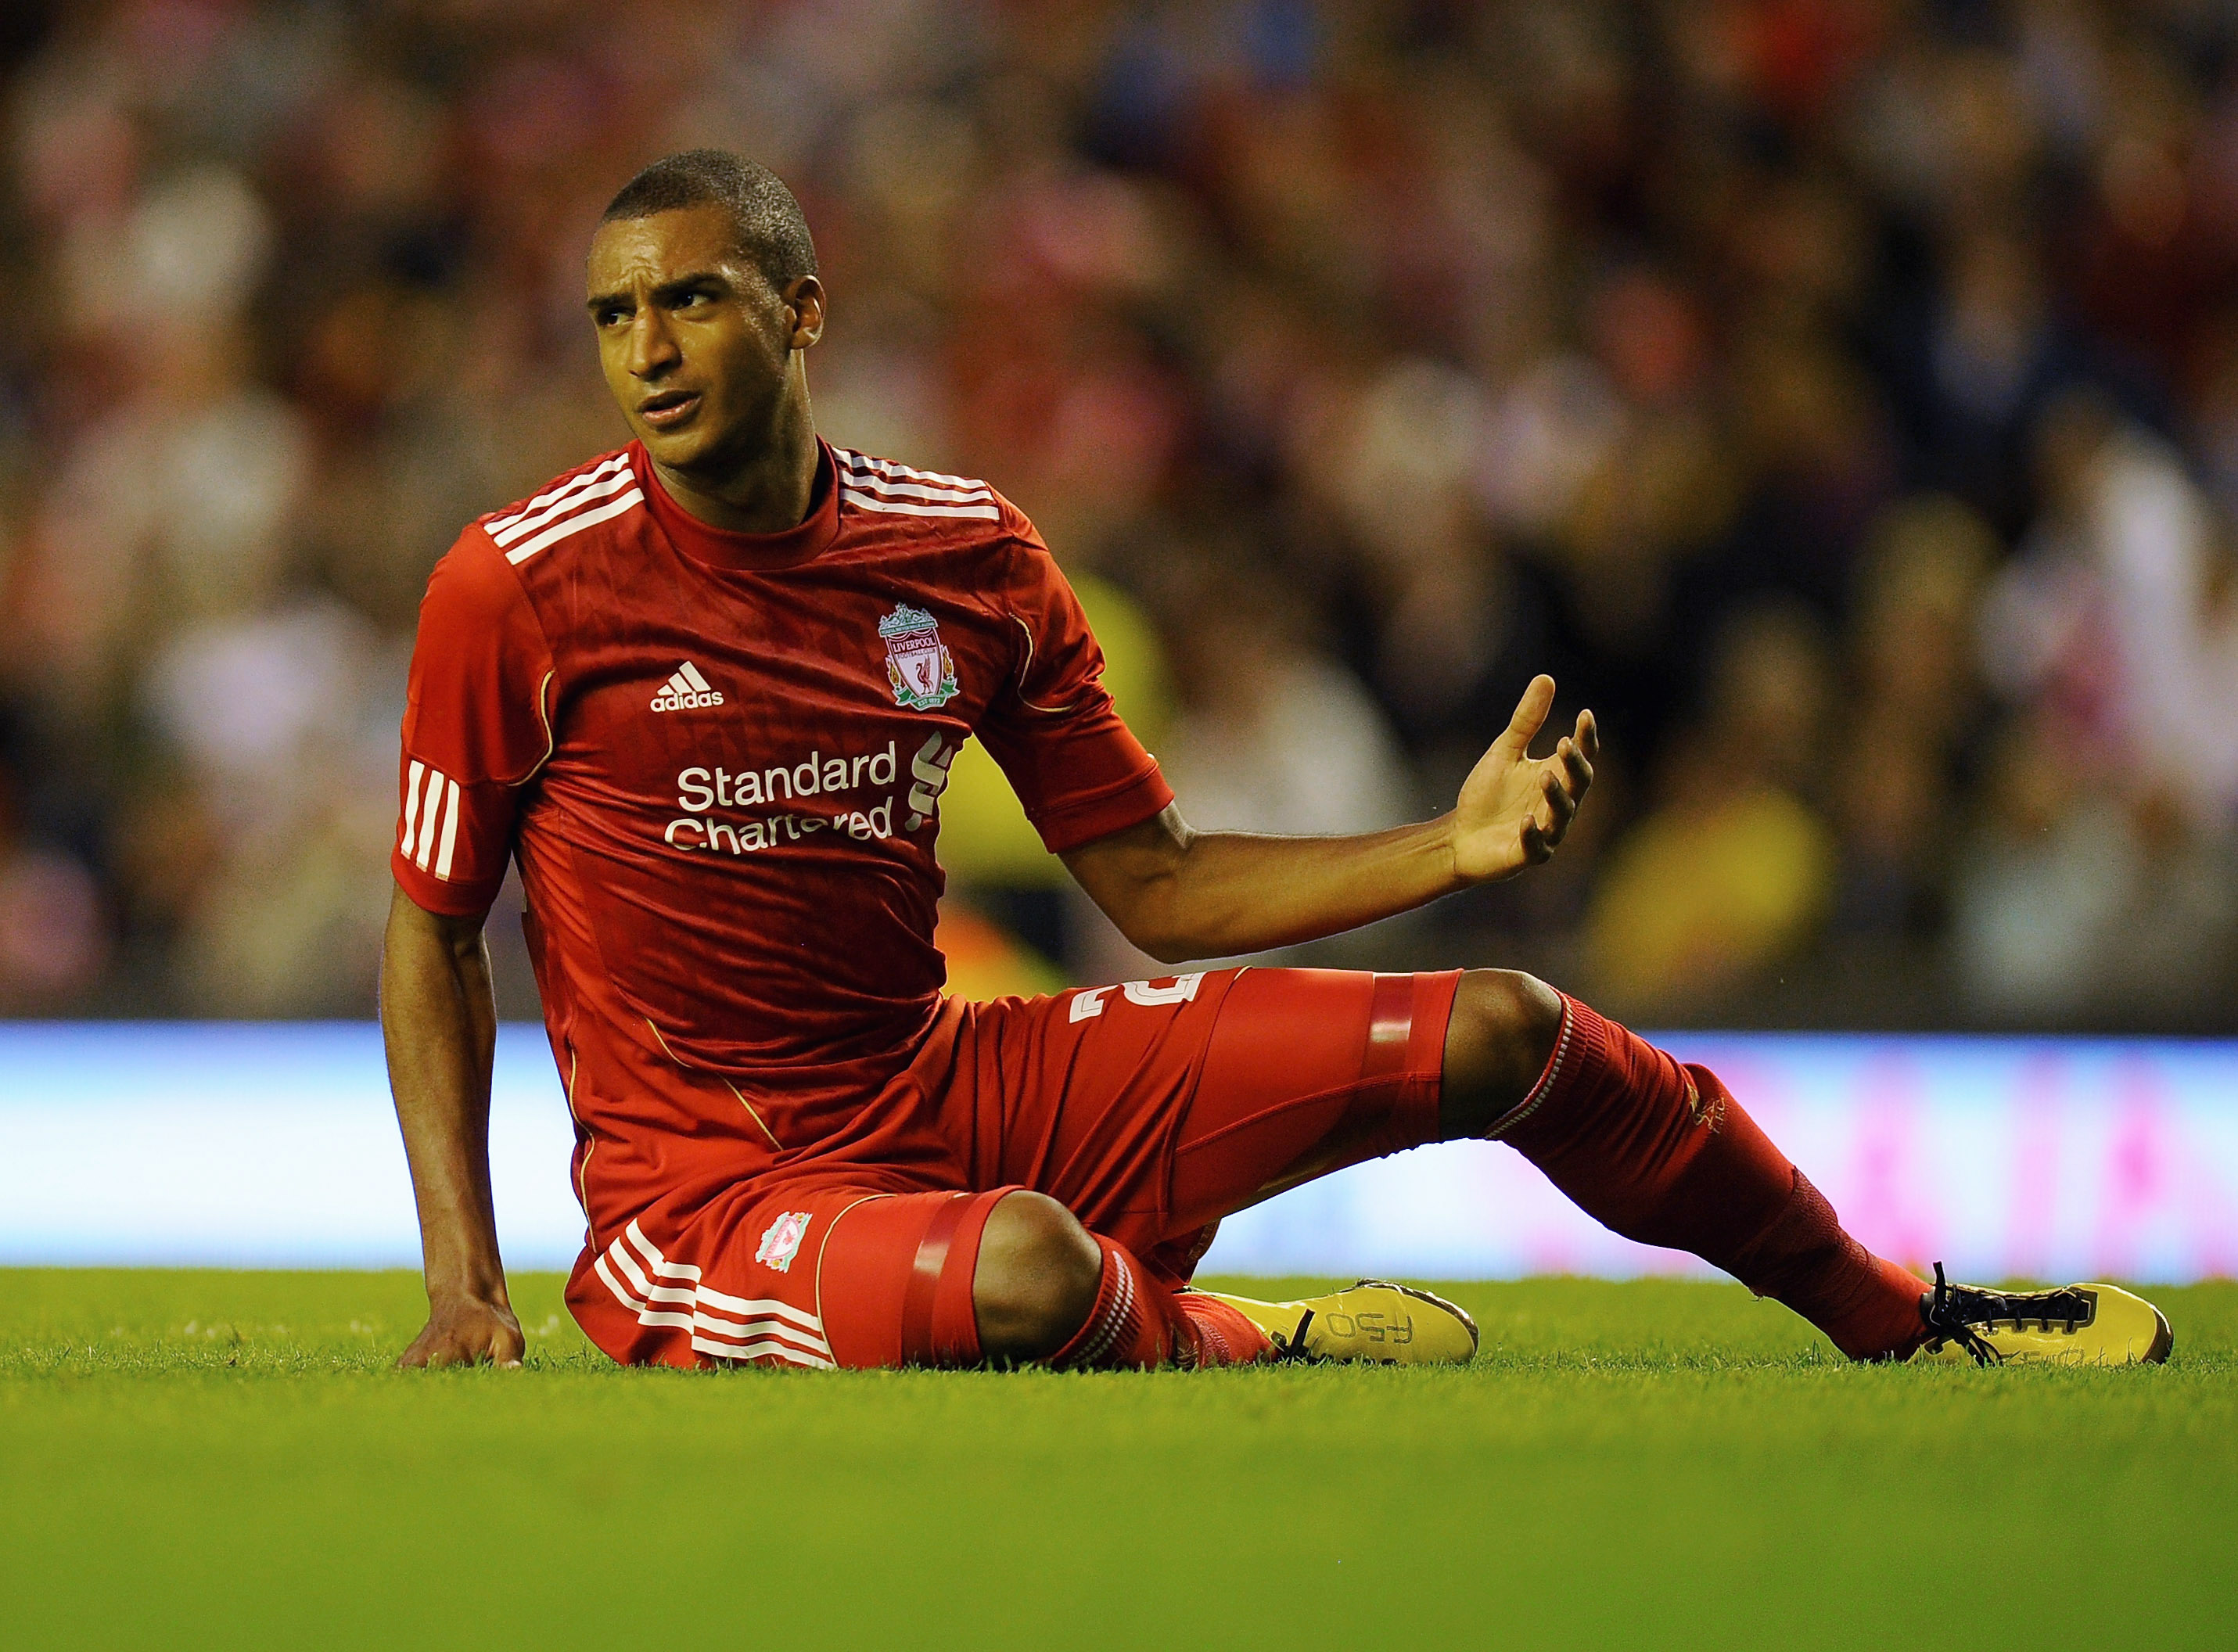 David Ngog was not really effective